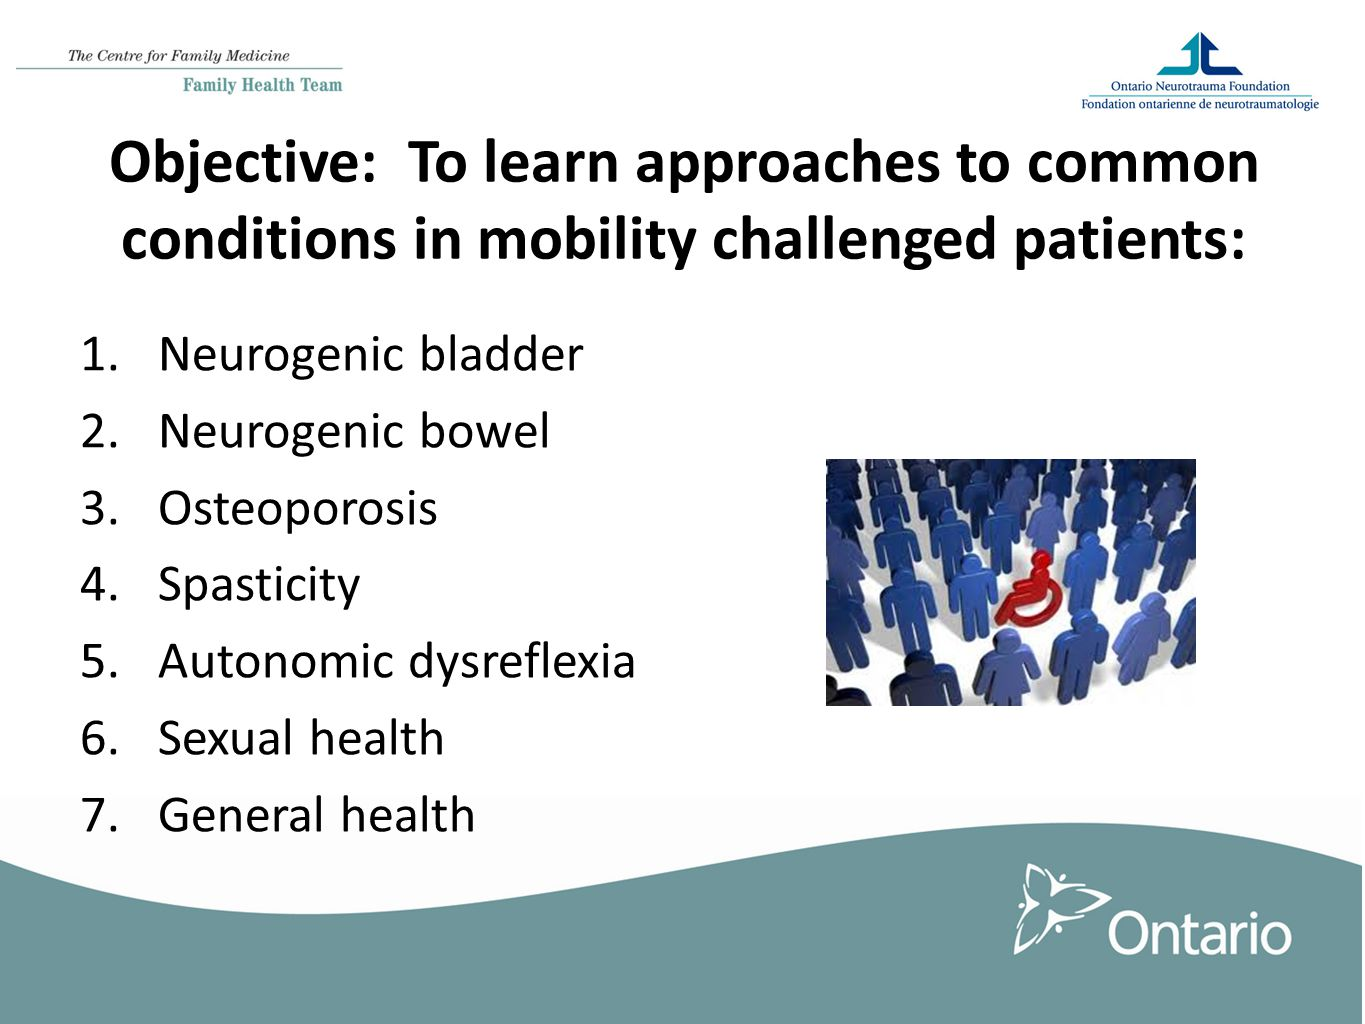 Objective: To learn approaches to common conditions in mobility challenged patients: 1.Neurogenic bladder 2.Neurogenic bowel 3.Osteoporosis 4.Spasticity 5.Autonomic dysreflexia 6.Sexual health 7.General health